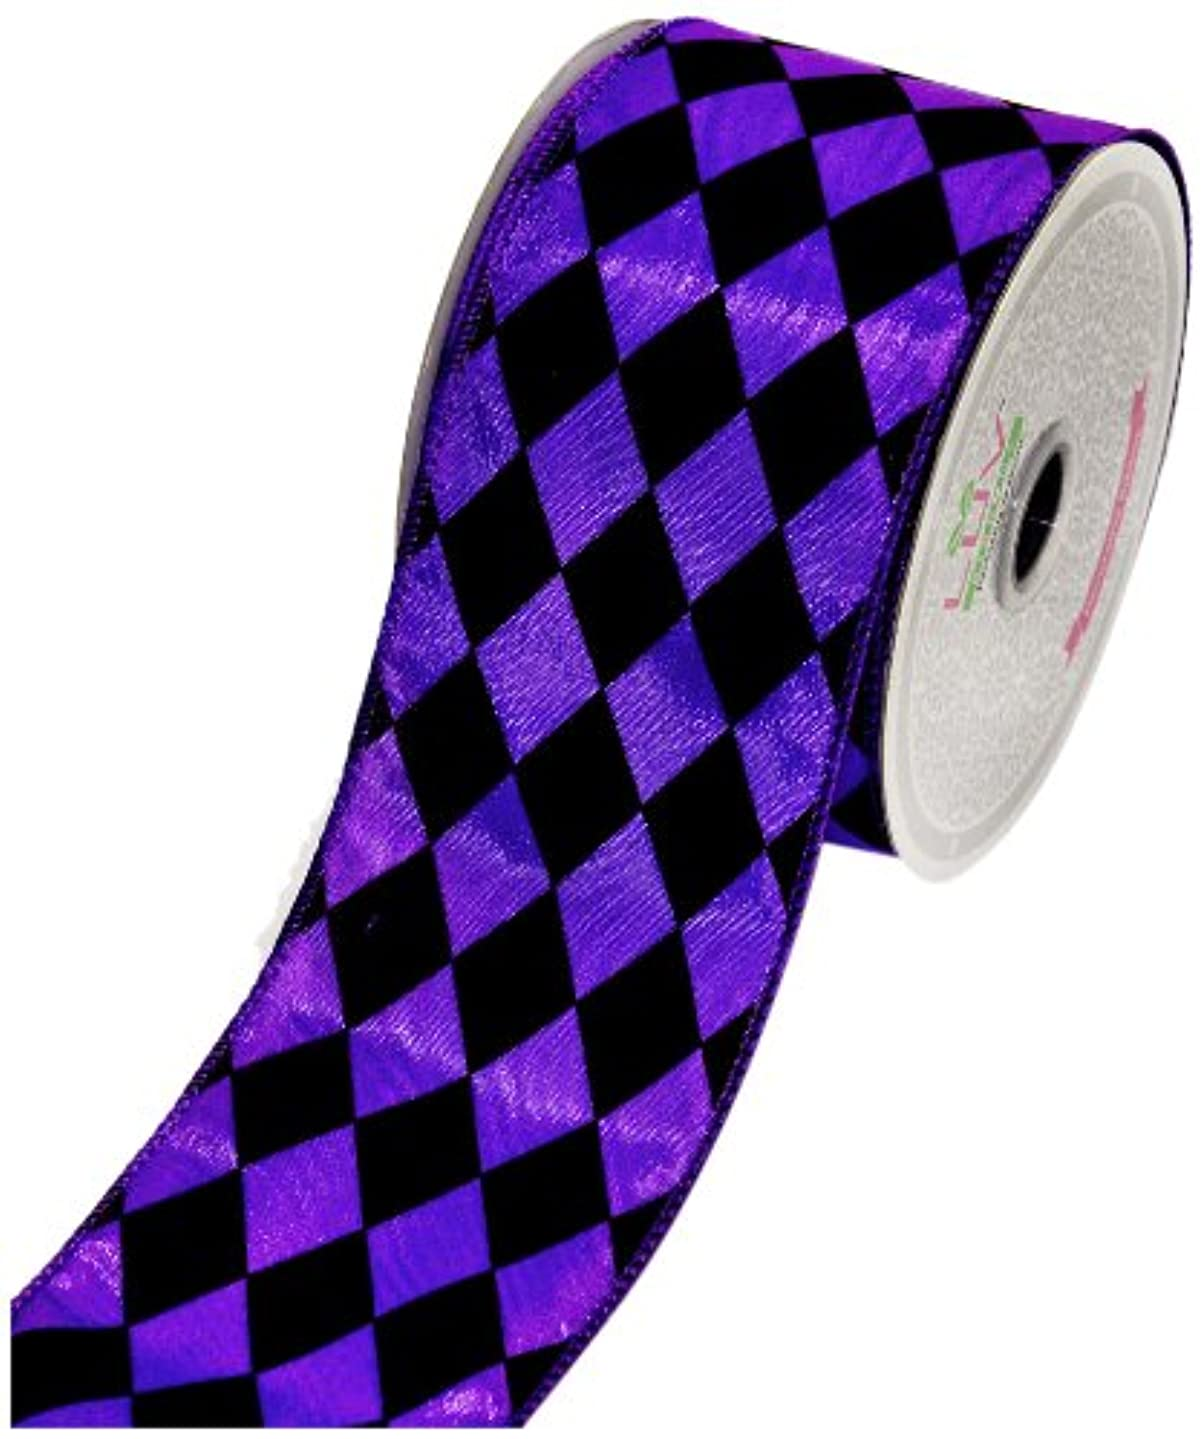 LUV RIBBONS by Creative Ideas 2-1/2-Inch Diamond Print Ribbon, 10-Yard, Purple with Black